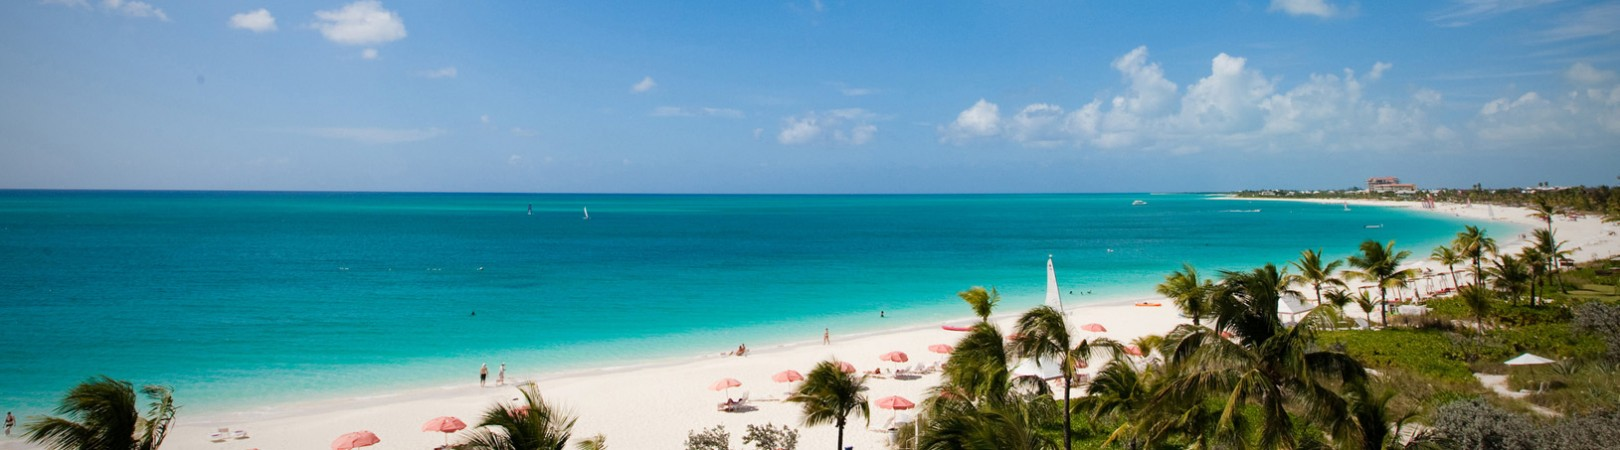 Turks-and-caicos-page_Header